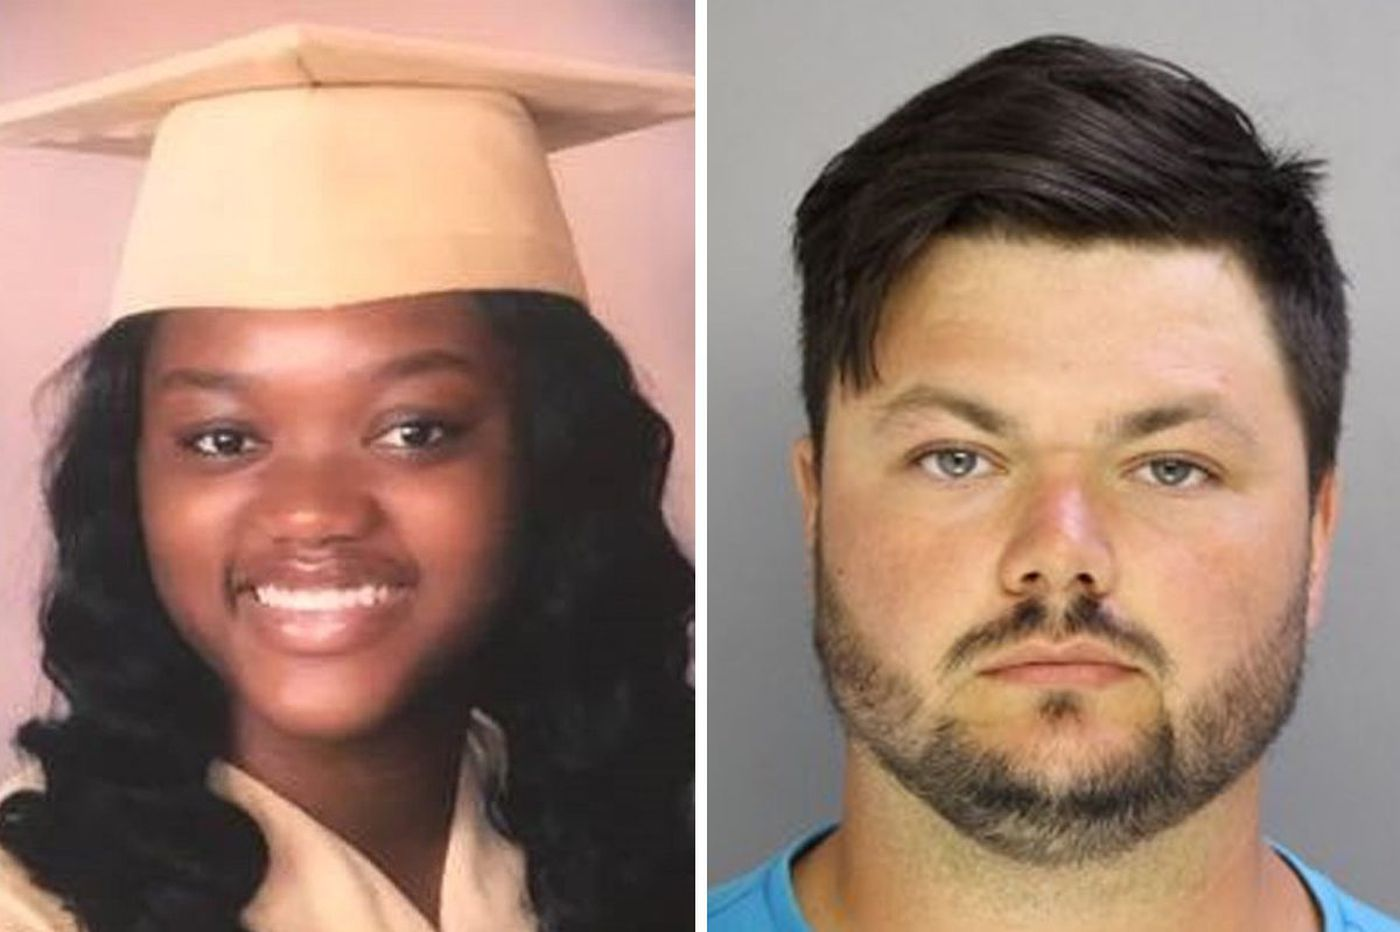 Chesco DA: David Desper, 28, charged in 'savage and senseless' road-rage killing of Bianca Roberson, 18